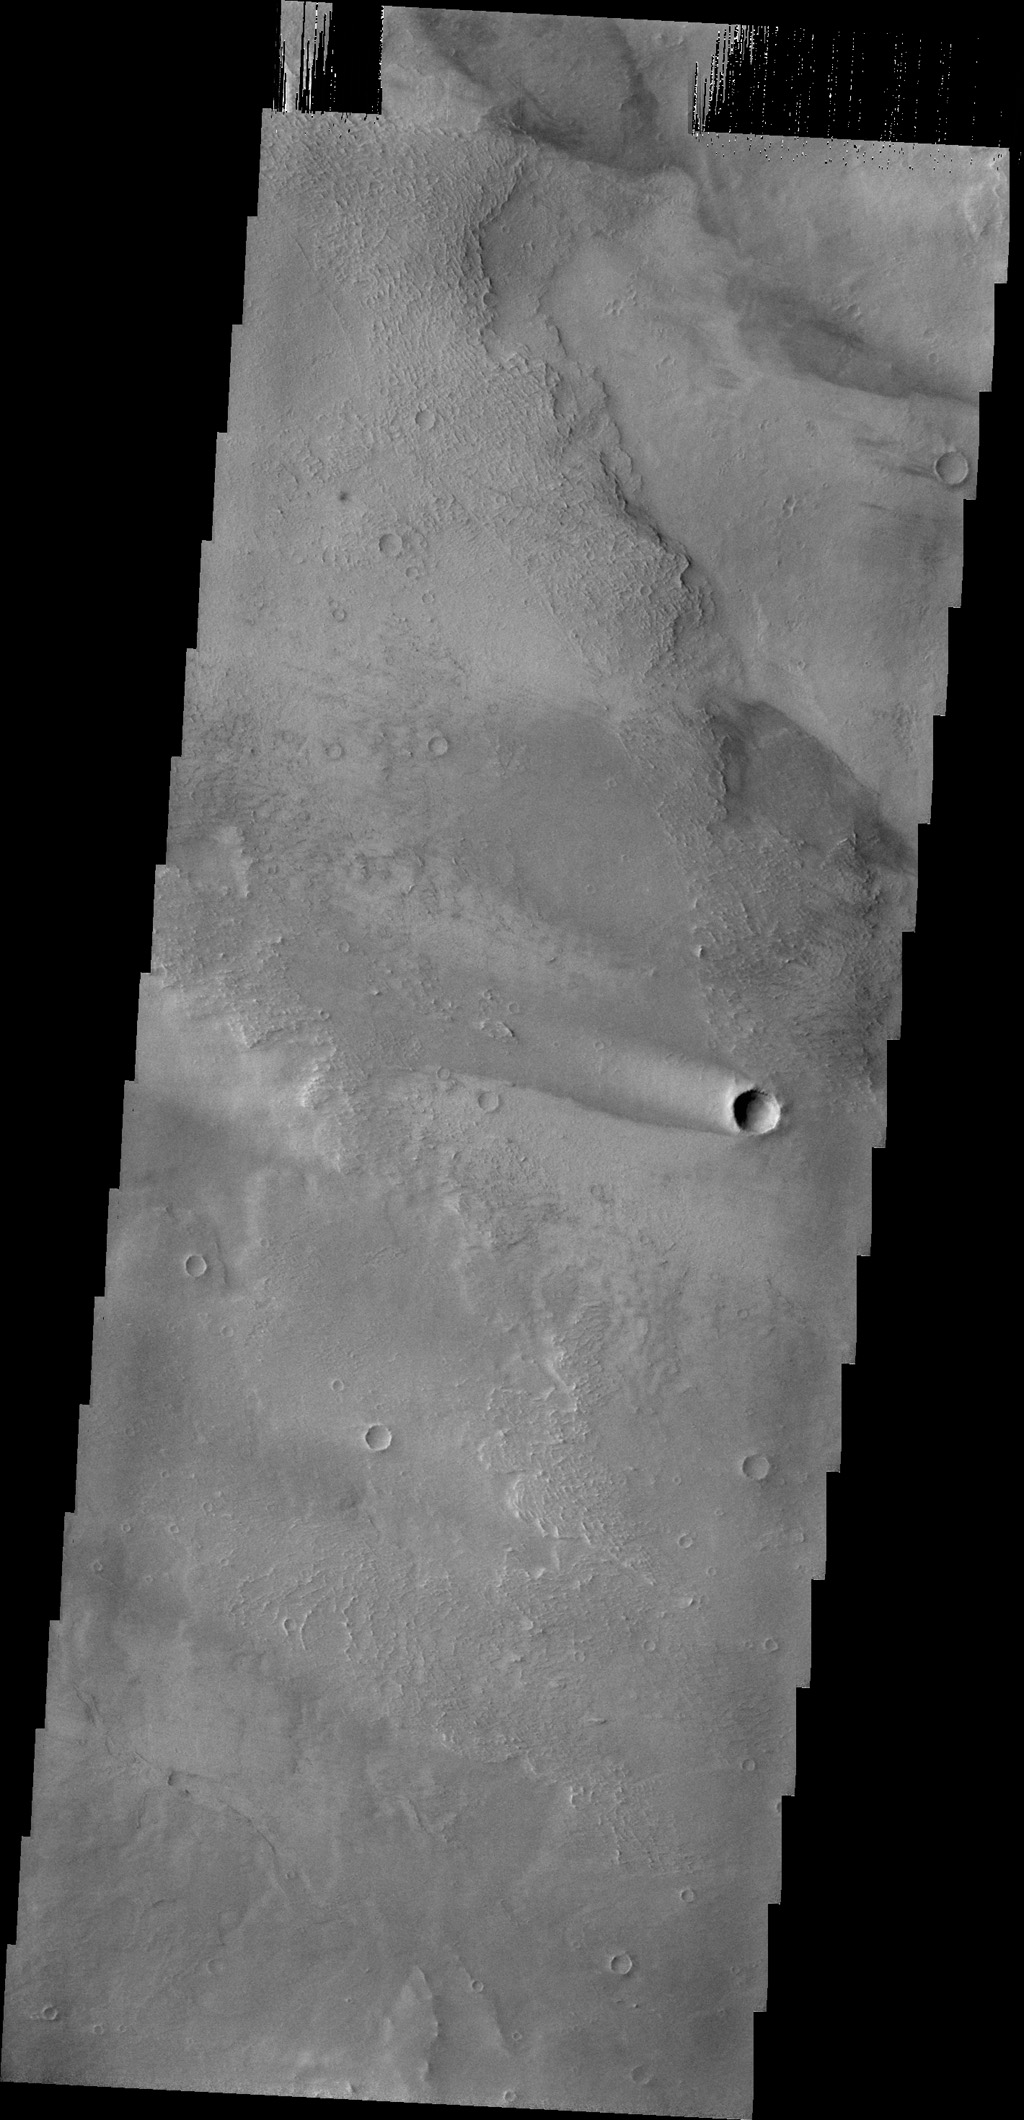 The windstreak is this image from NASA's 2001 Mars Odyssey spacecraft is located on the volcanic flows of Daedalia Planum.